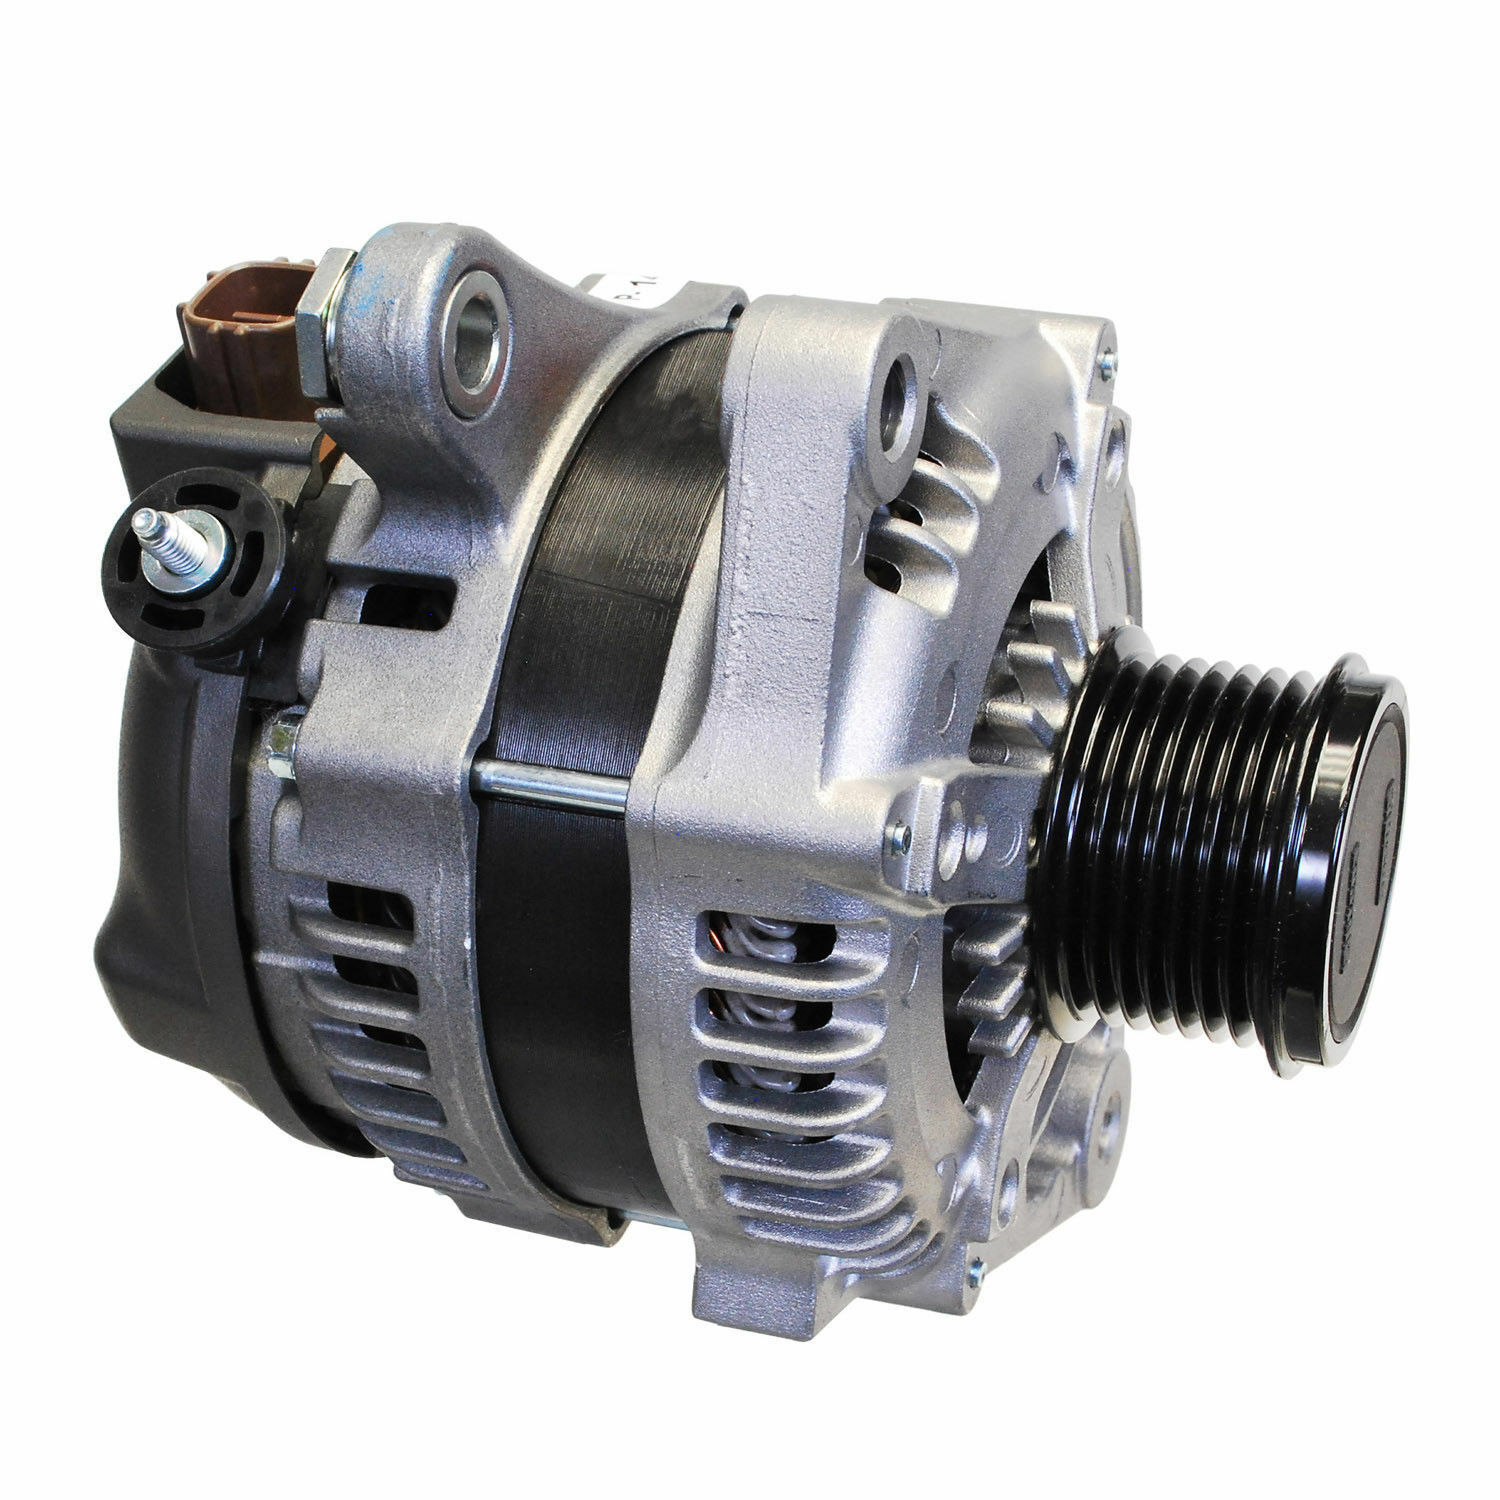 Alternator 100Amp for Toyota 4Runner  FJ Cruiser & Tundra V6 4.0L 11517 104210-2840 104210-2841 104210-2843 27060-31180